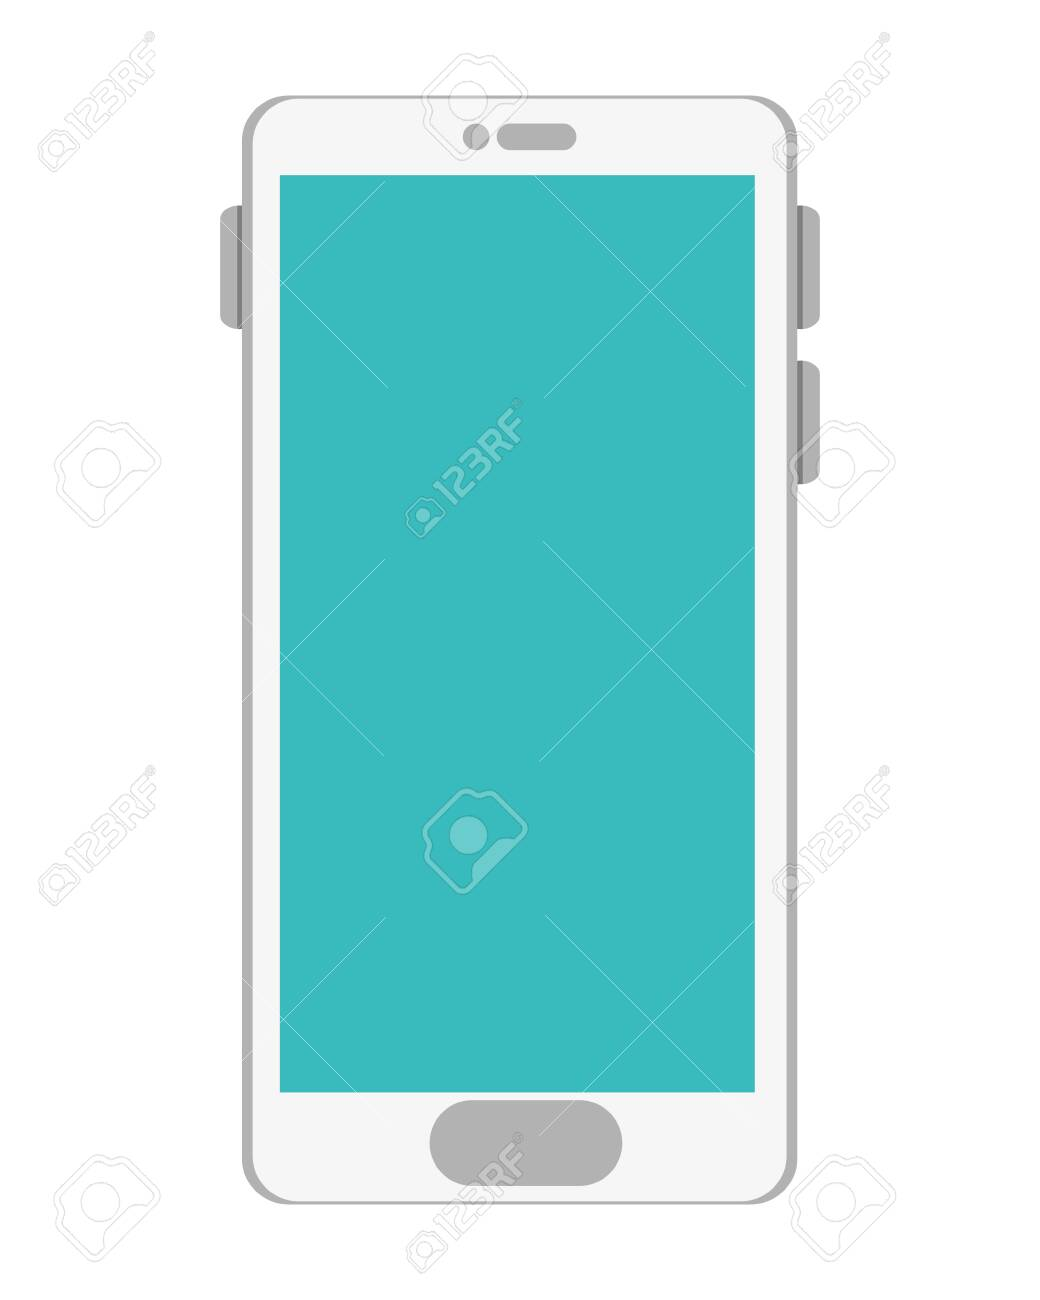 smartphone technology device isolated icon vector illustration design - 124922626